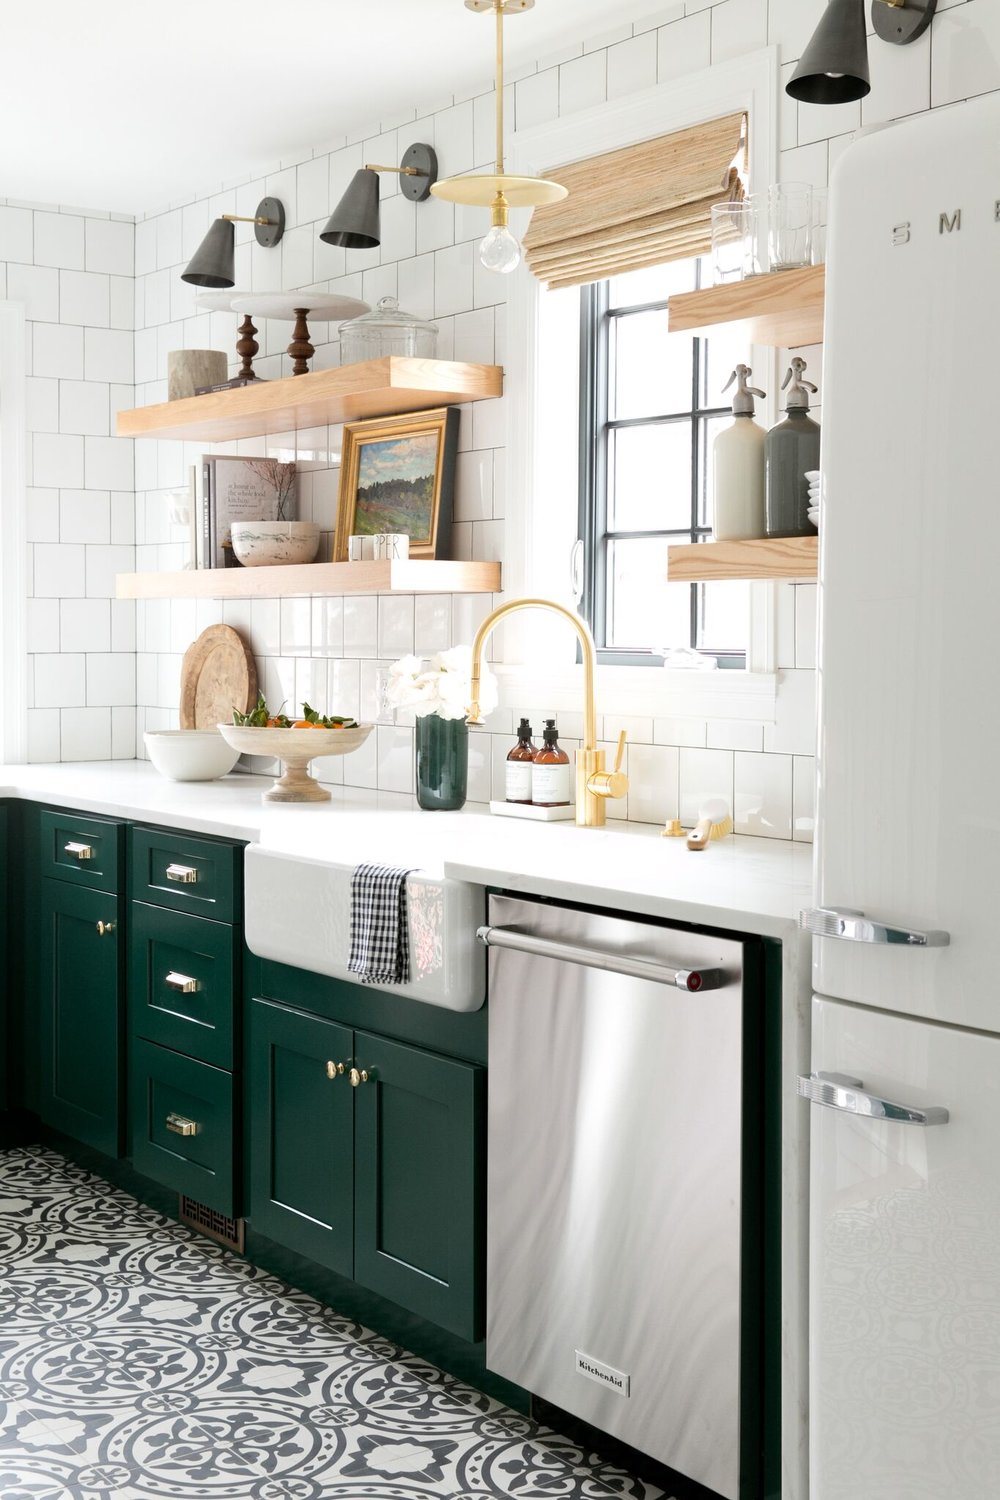 Whether You Are Going Bold Or Classic, The Color You Choose Sets The Tone  Of The Entire Room. Today Weu0027re Sharing Some Of Our Favorite Cabinet Colors  For ...